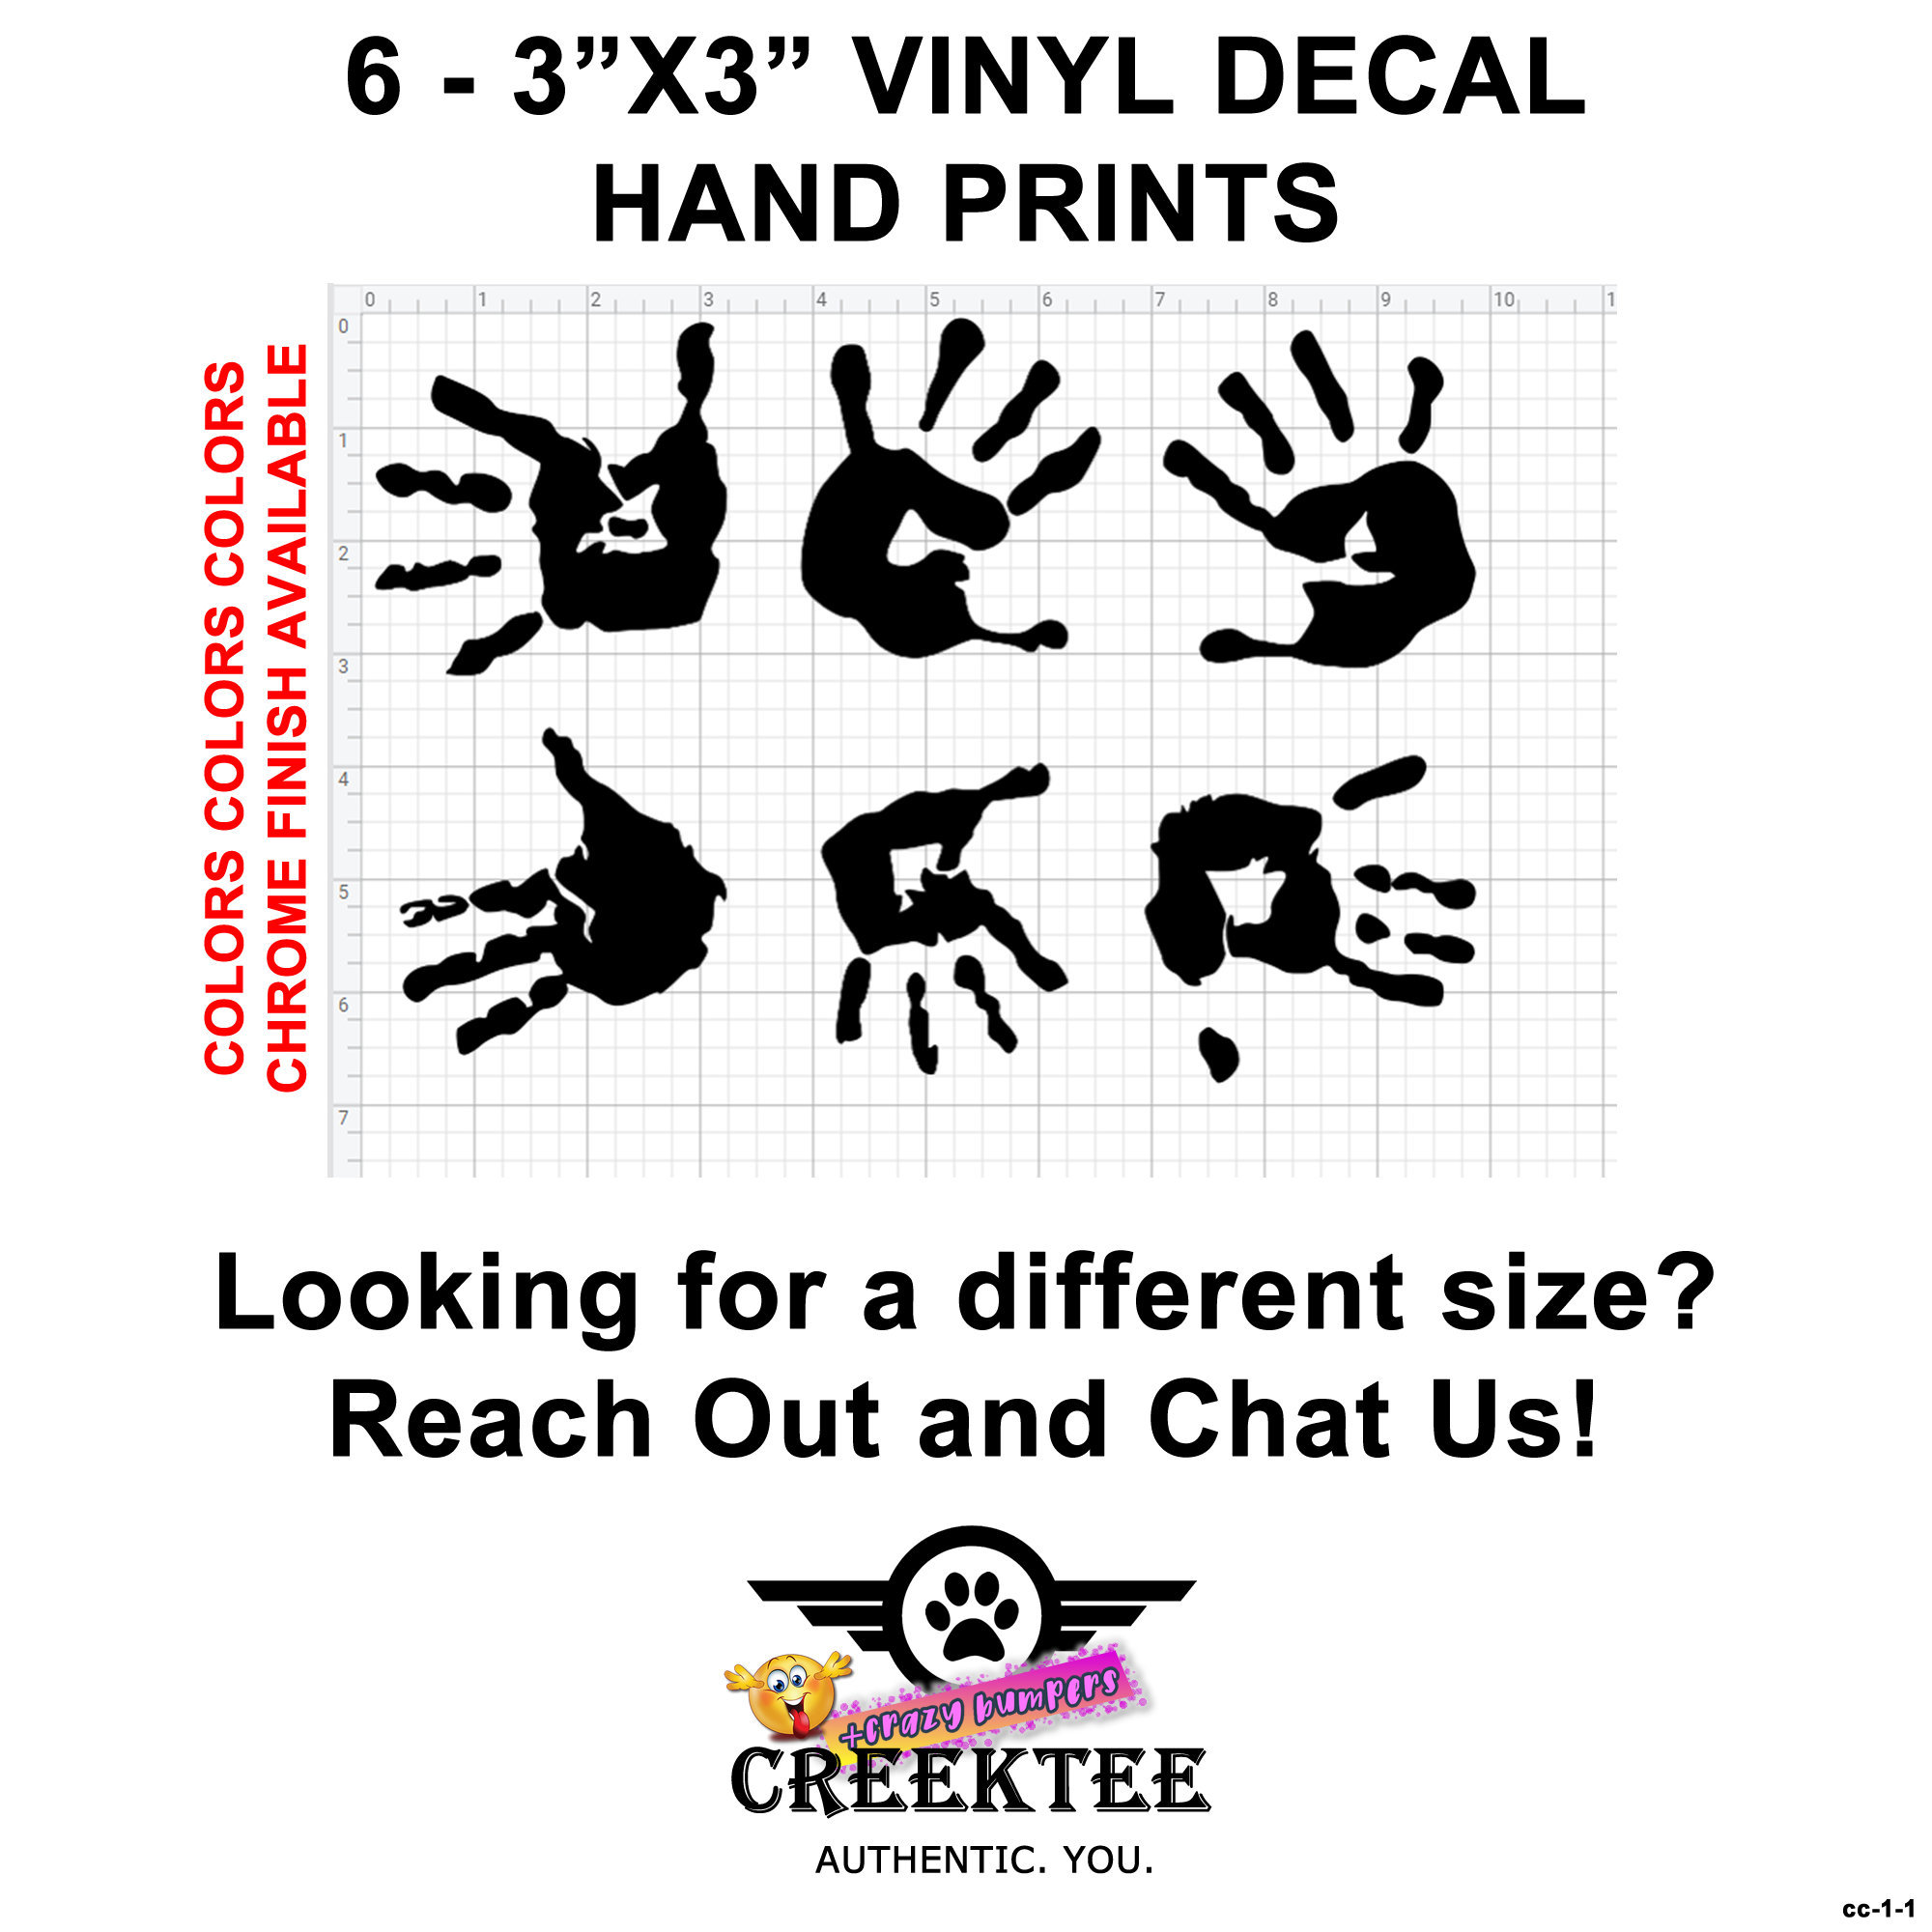 CAD$9.74 - 6 Hand Print Vinyl Decals approximate 3 inch by 3 inch per decal also various sizes and colors - colours